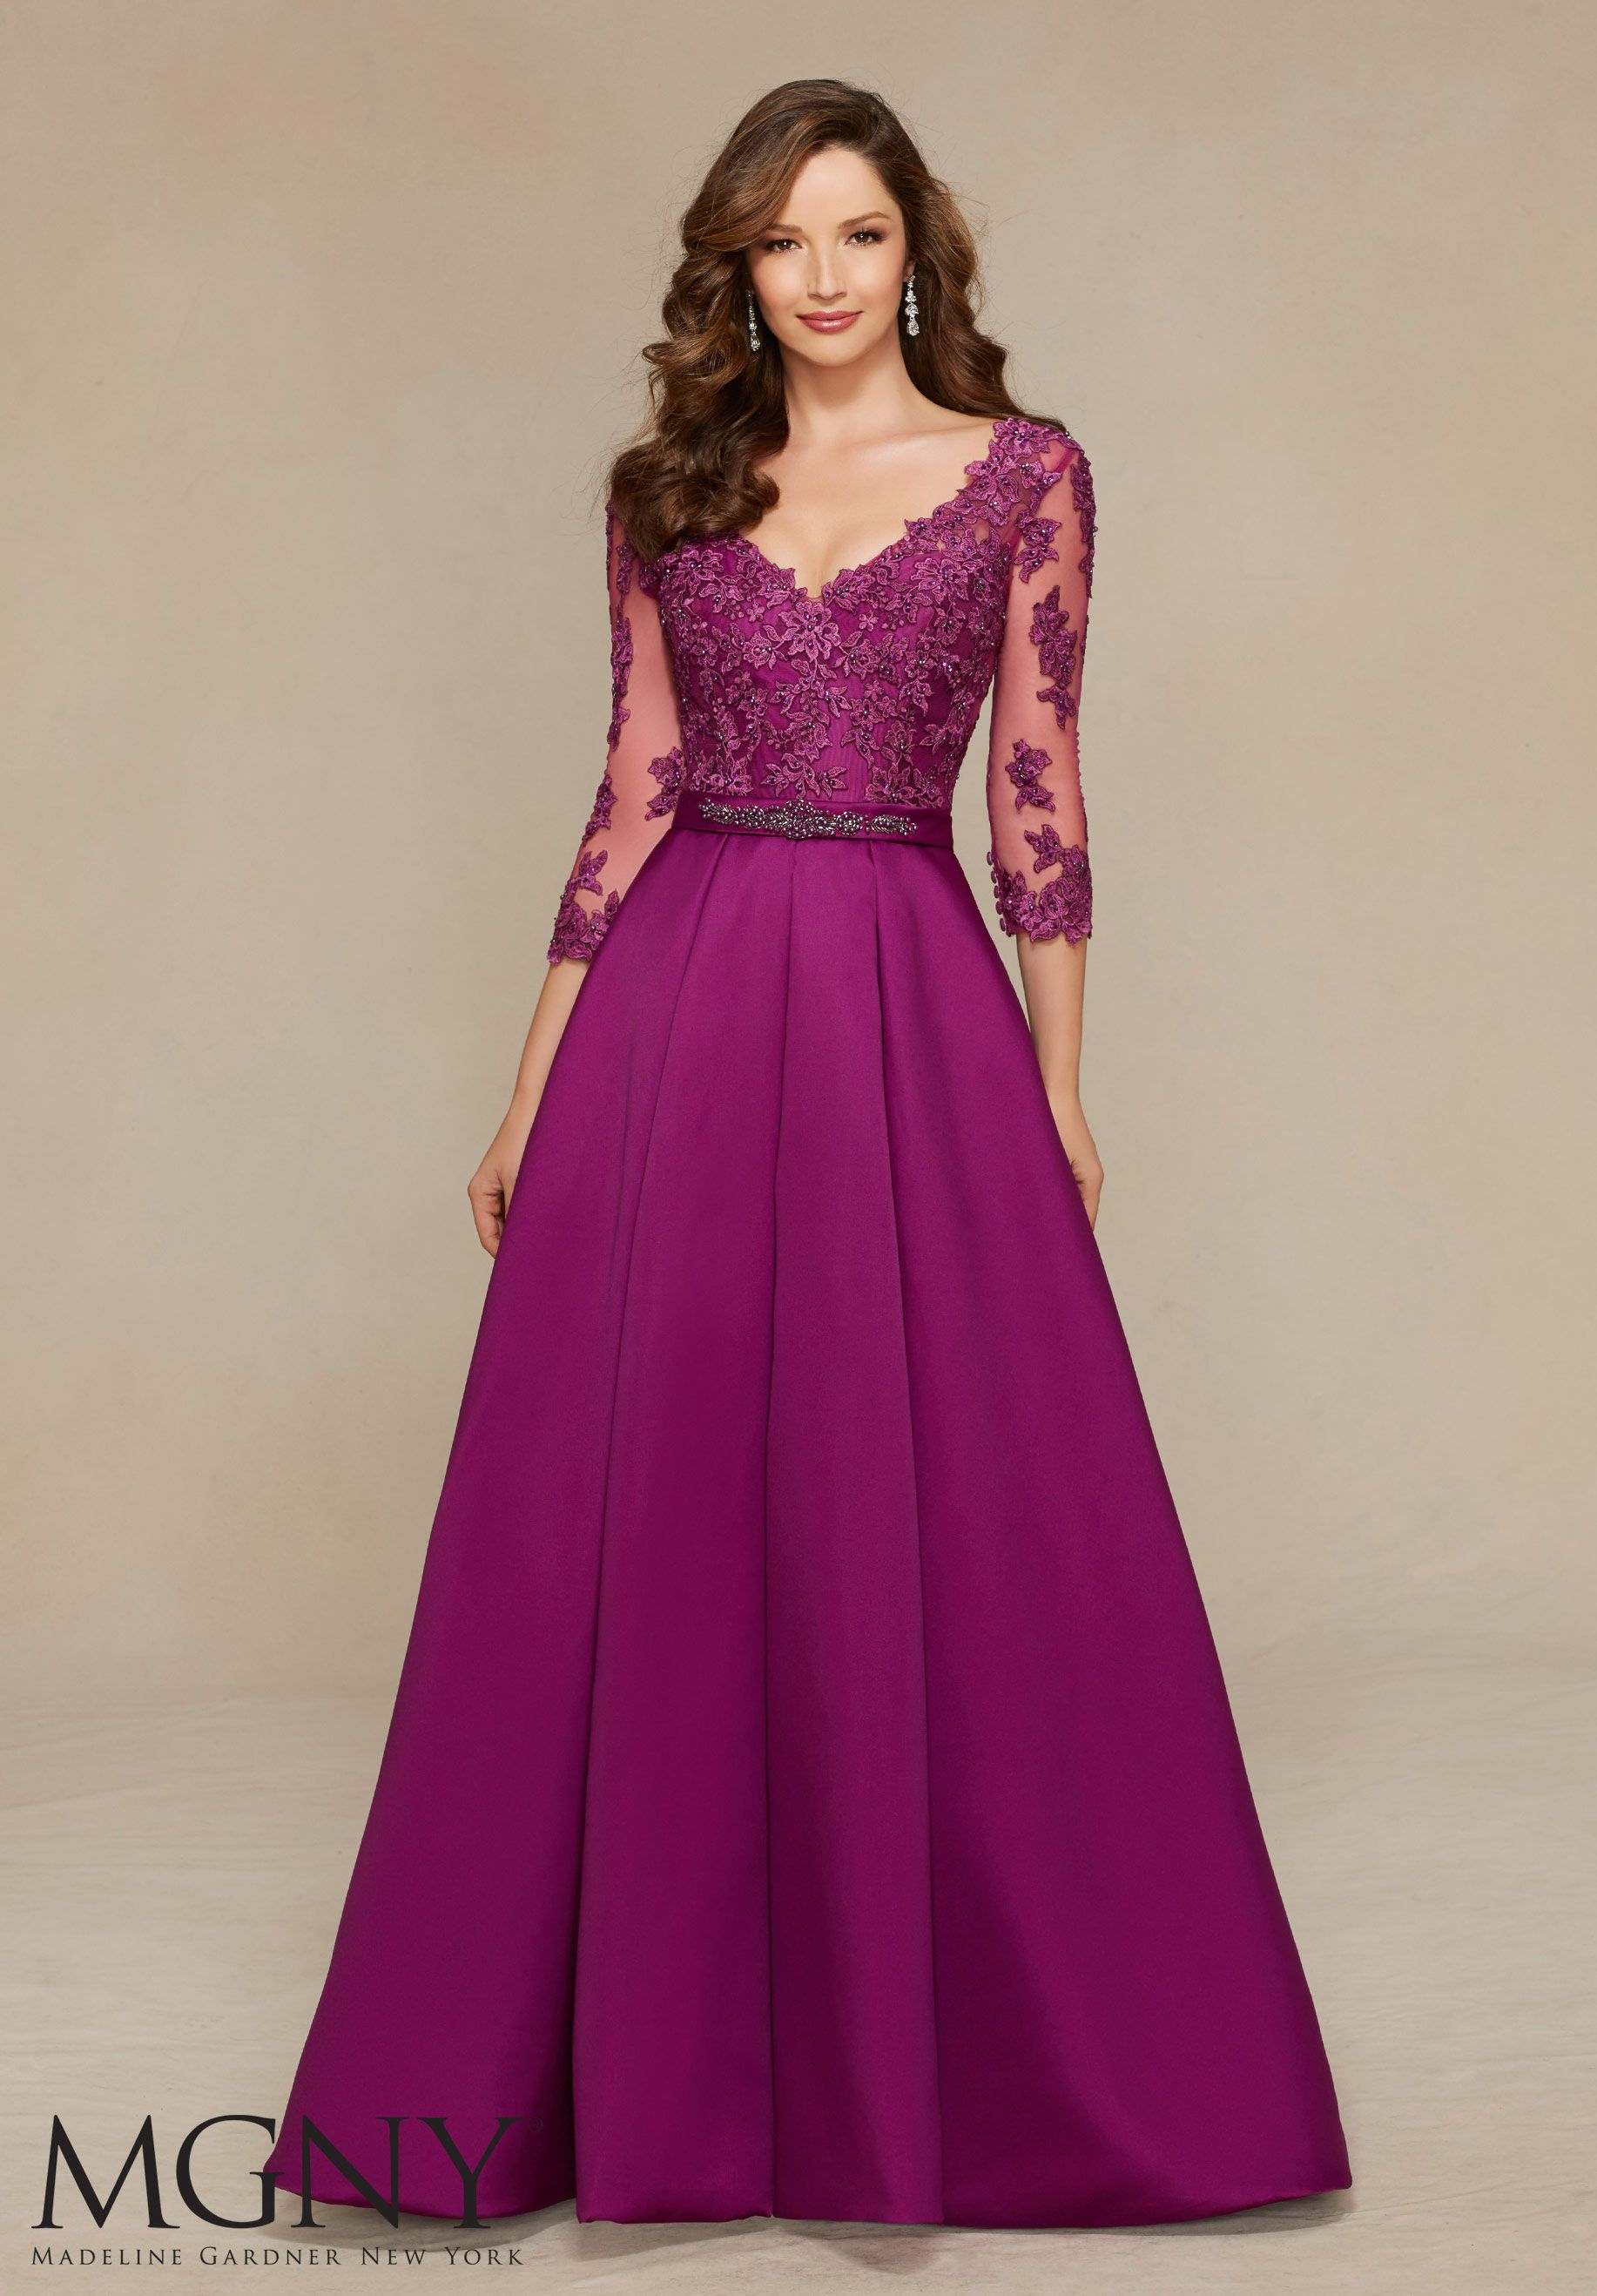 Beaded Lace Appliqués on Larissa Satin Evening Dress | Vestidos ...